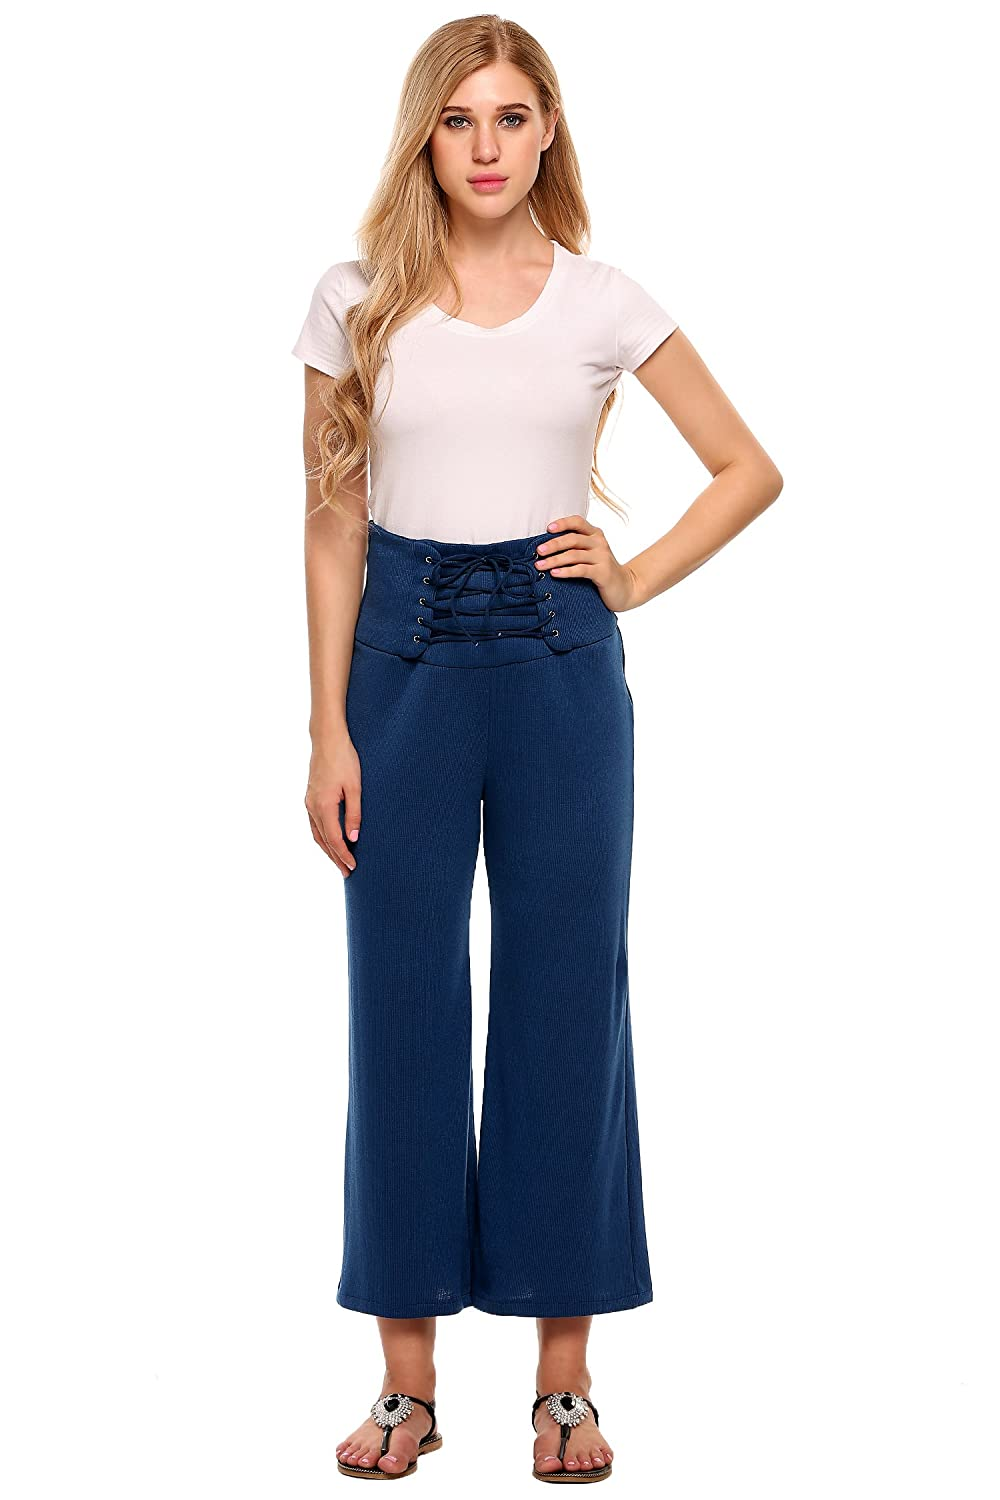 Zeagoo Womens Elastic Waistband Chiffon Palazzo Pants with Pockets,Wide Leg Capri Culottes Pants